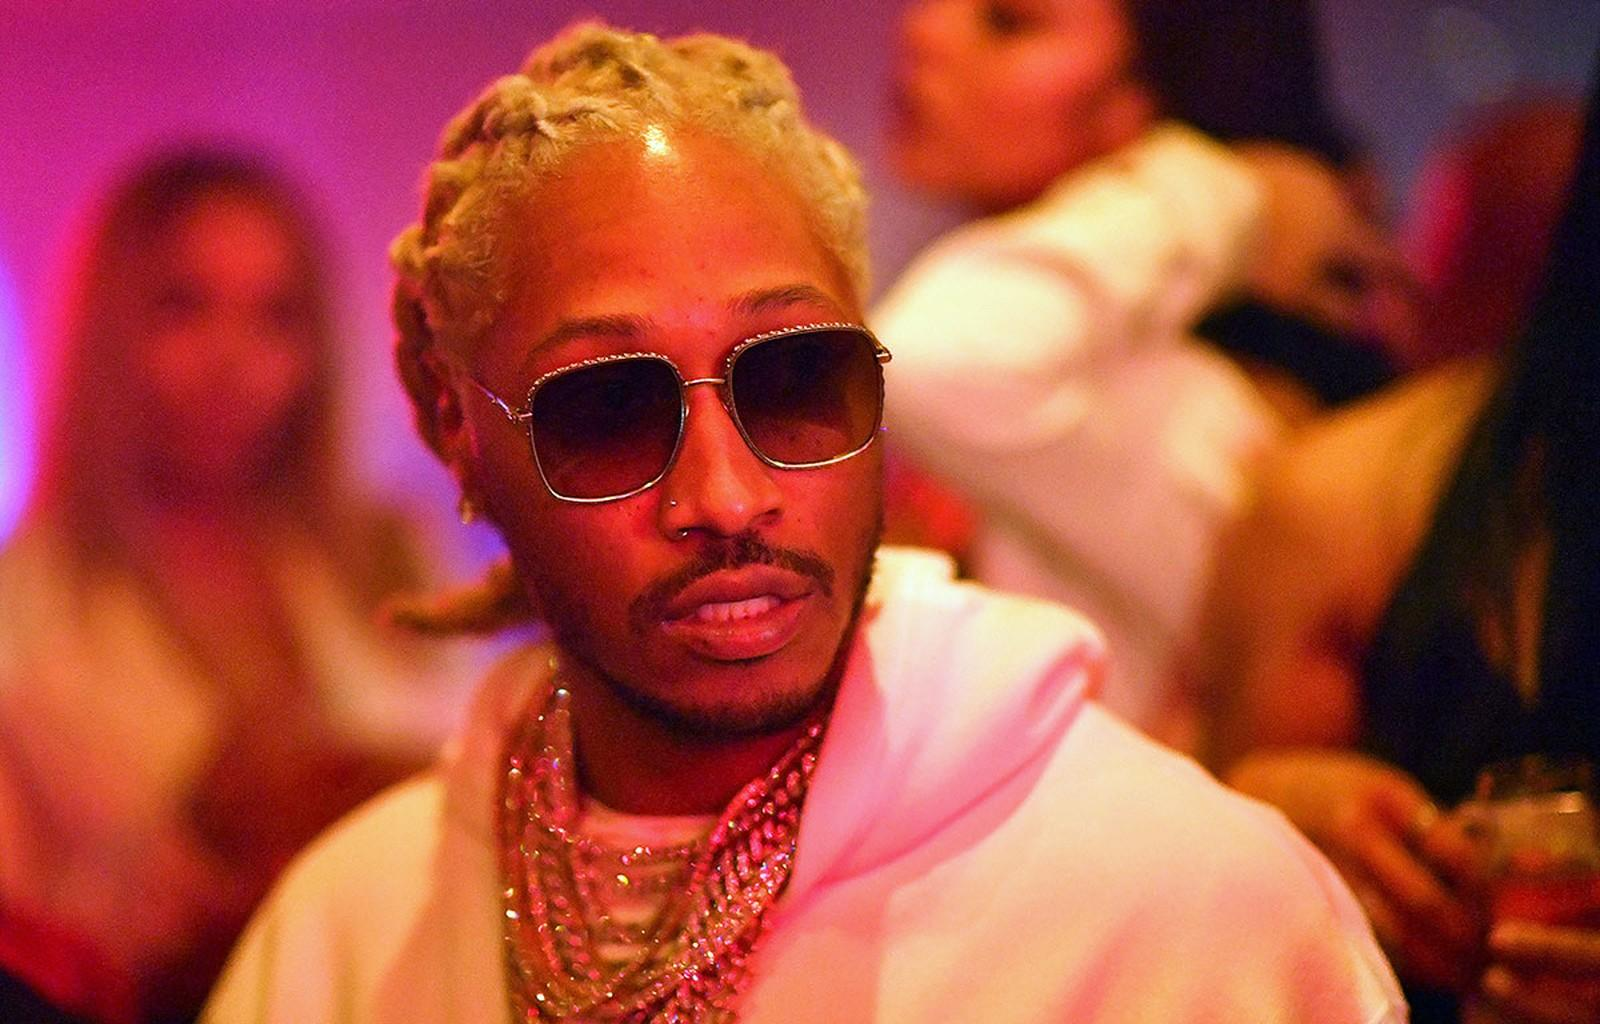 Future Says He Never Loved Joie Chavis! Check Out The Audio